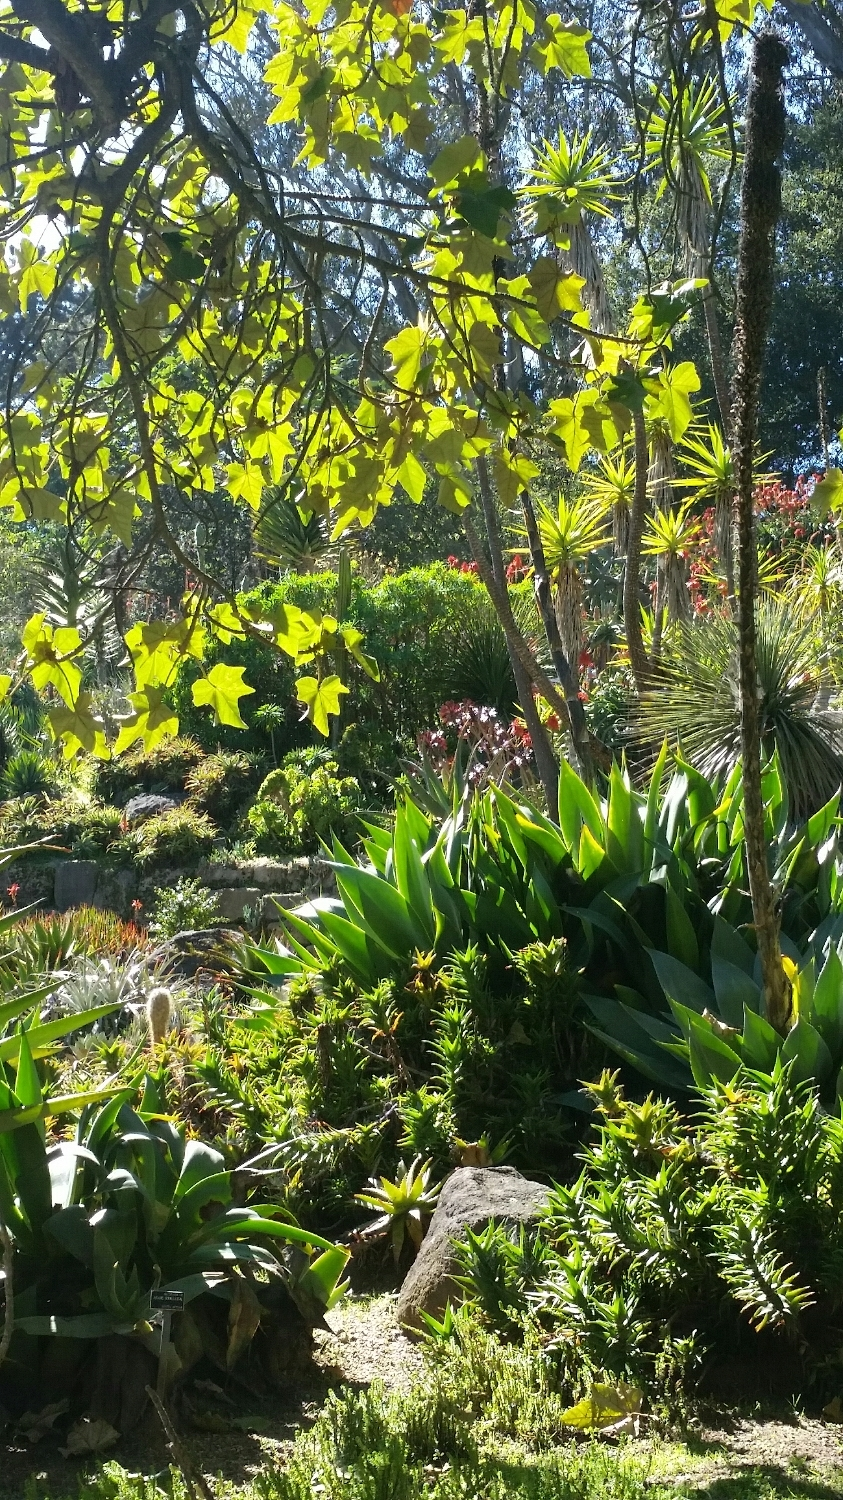 Golden gate park...botanical gardens. Layers of green and sunlight.